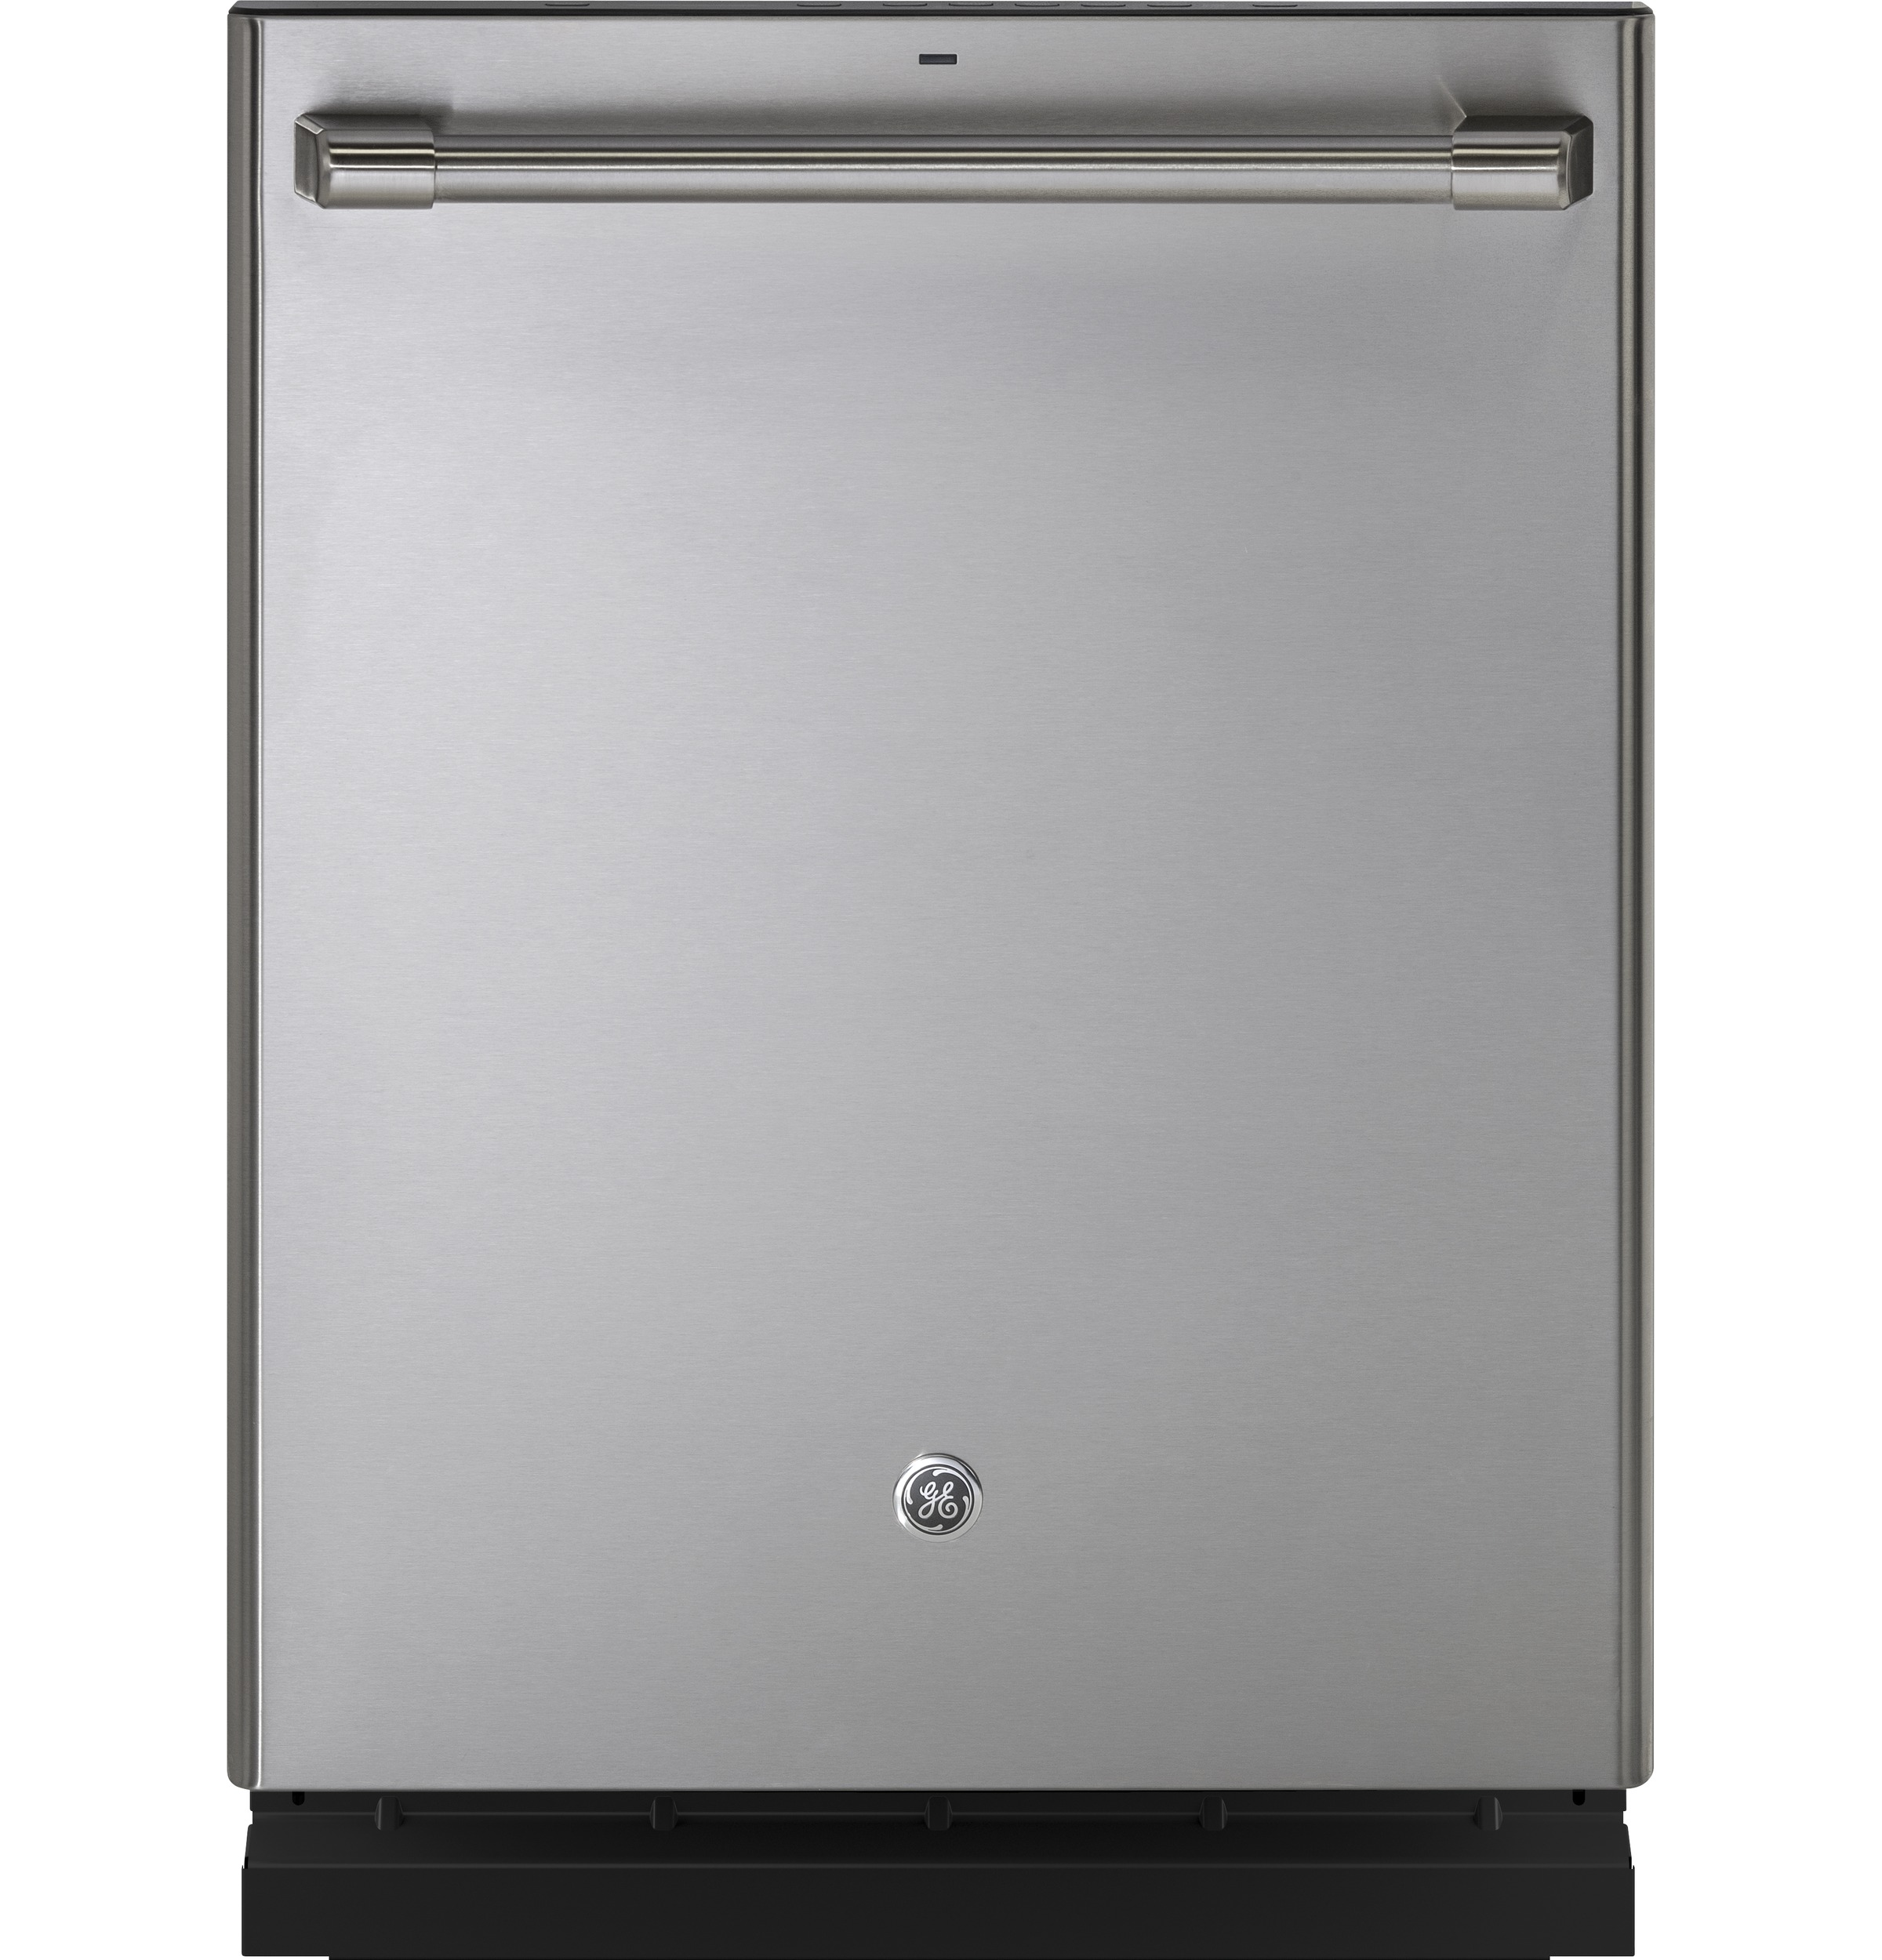 GE Dishwasher CDT835SSJSS